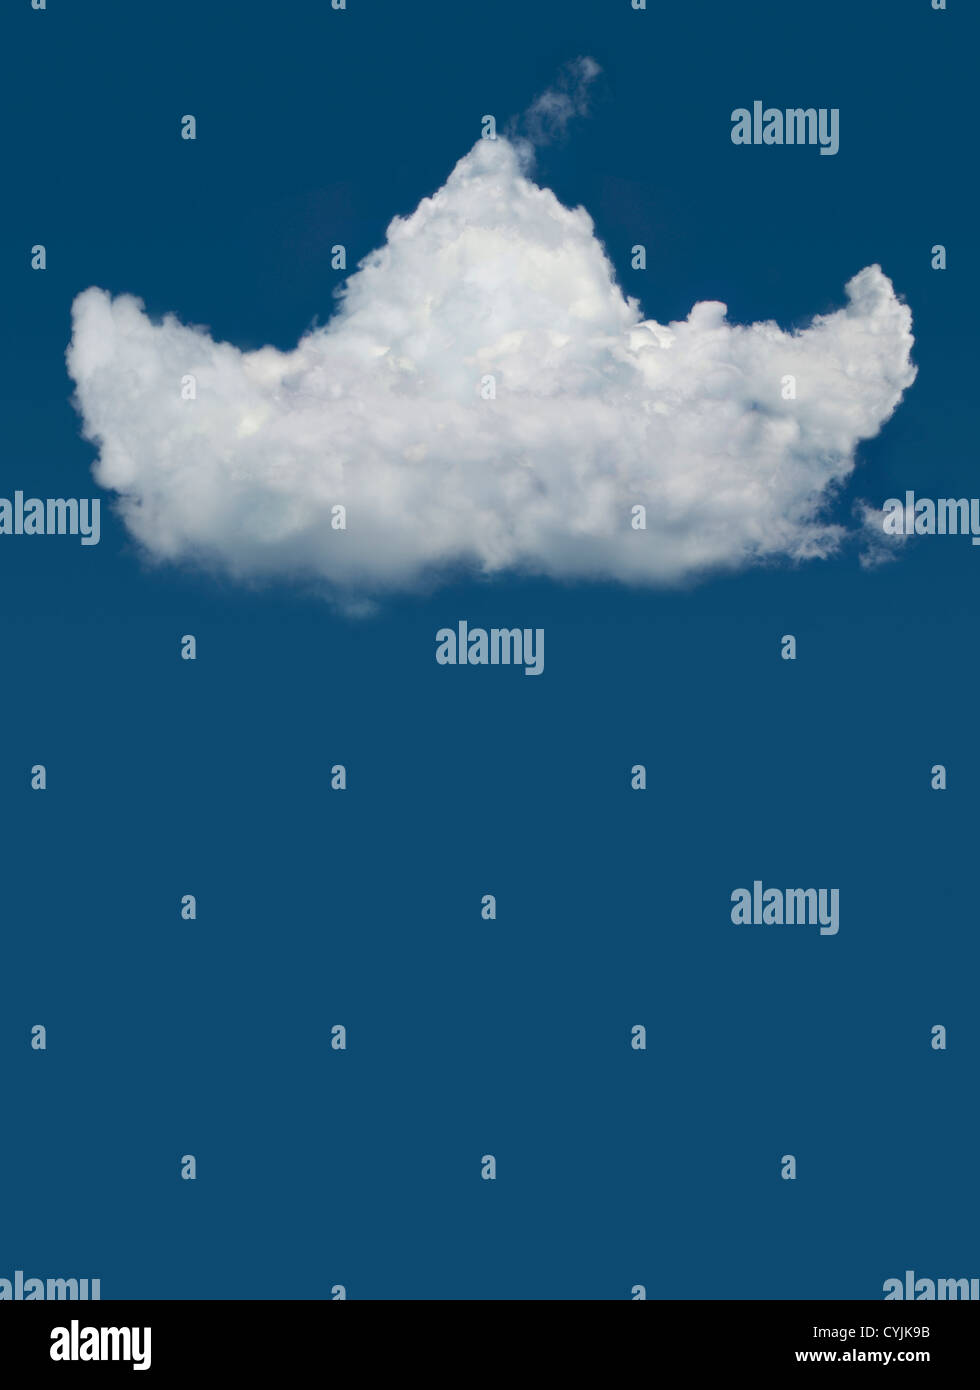 Boat shaped cloud isolated on blue sky - Stock Image